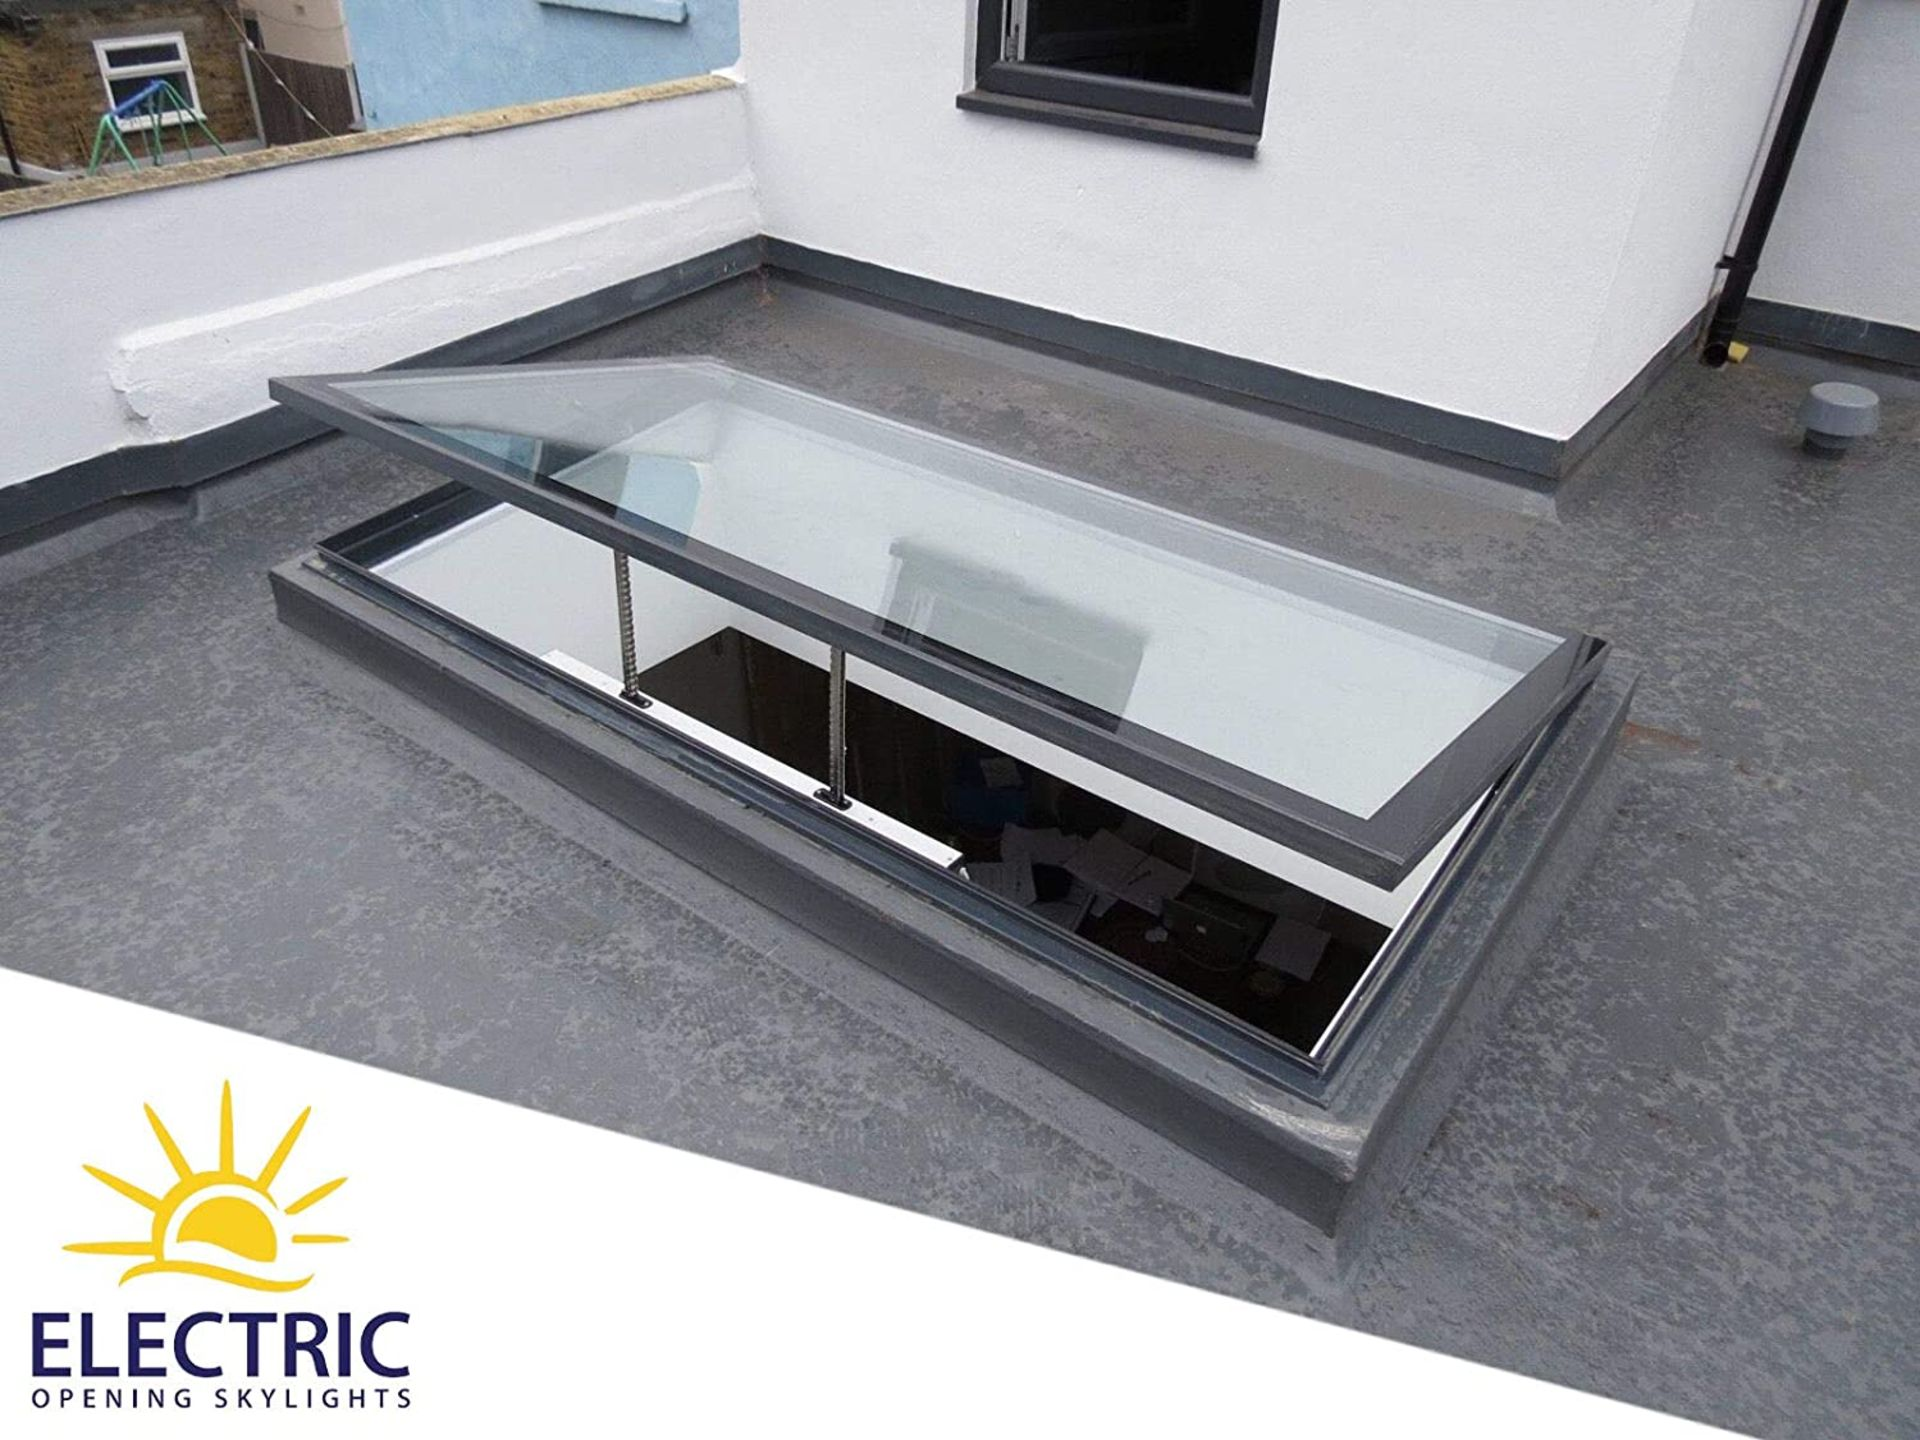 Panoroof (EOS) Electric Opening Skylight 800x1800mm - Aluminiun Frame Double Glazed Laminated Self-